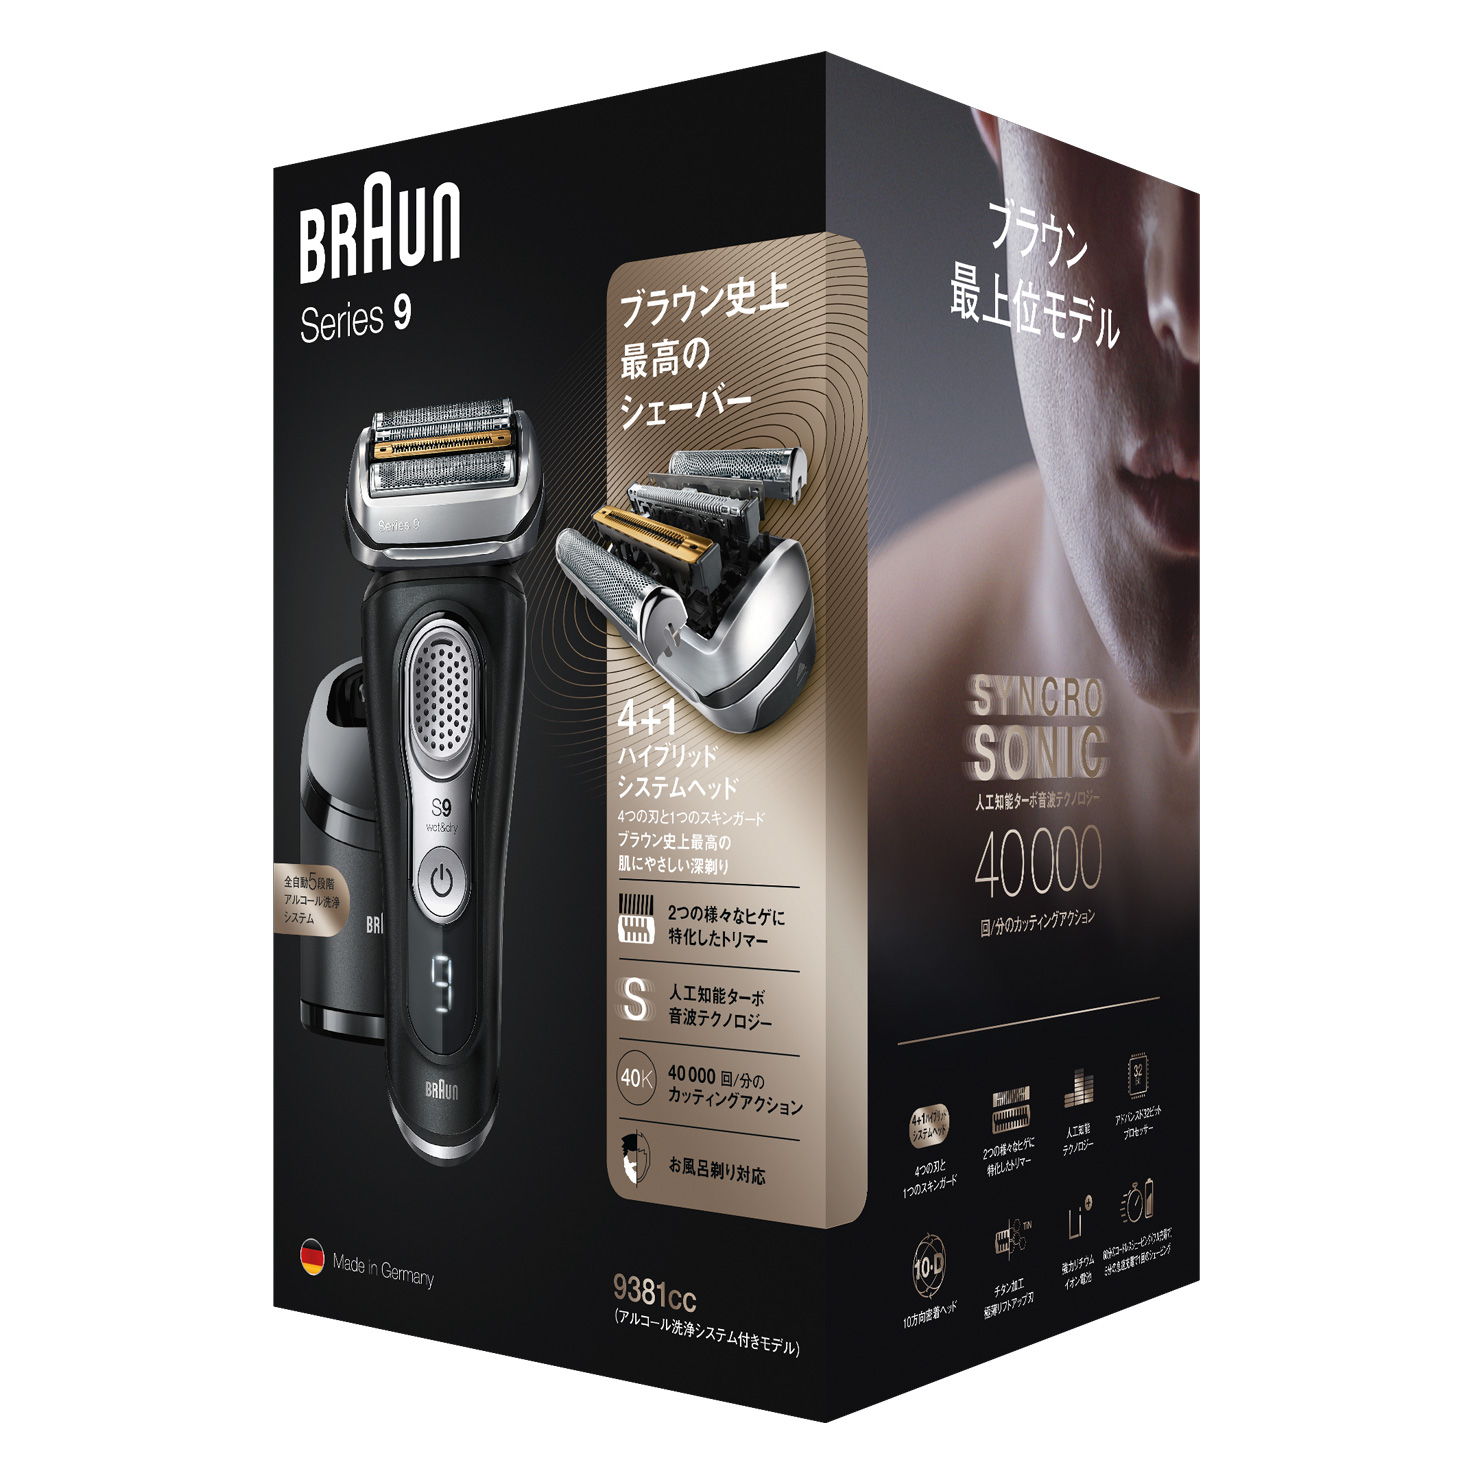 Series 9 9381cc shaver - Packaging